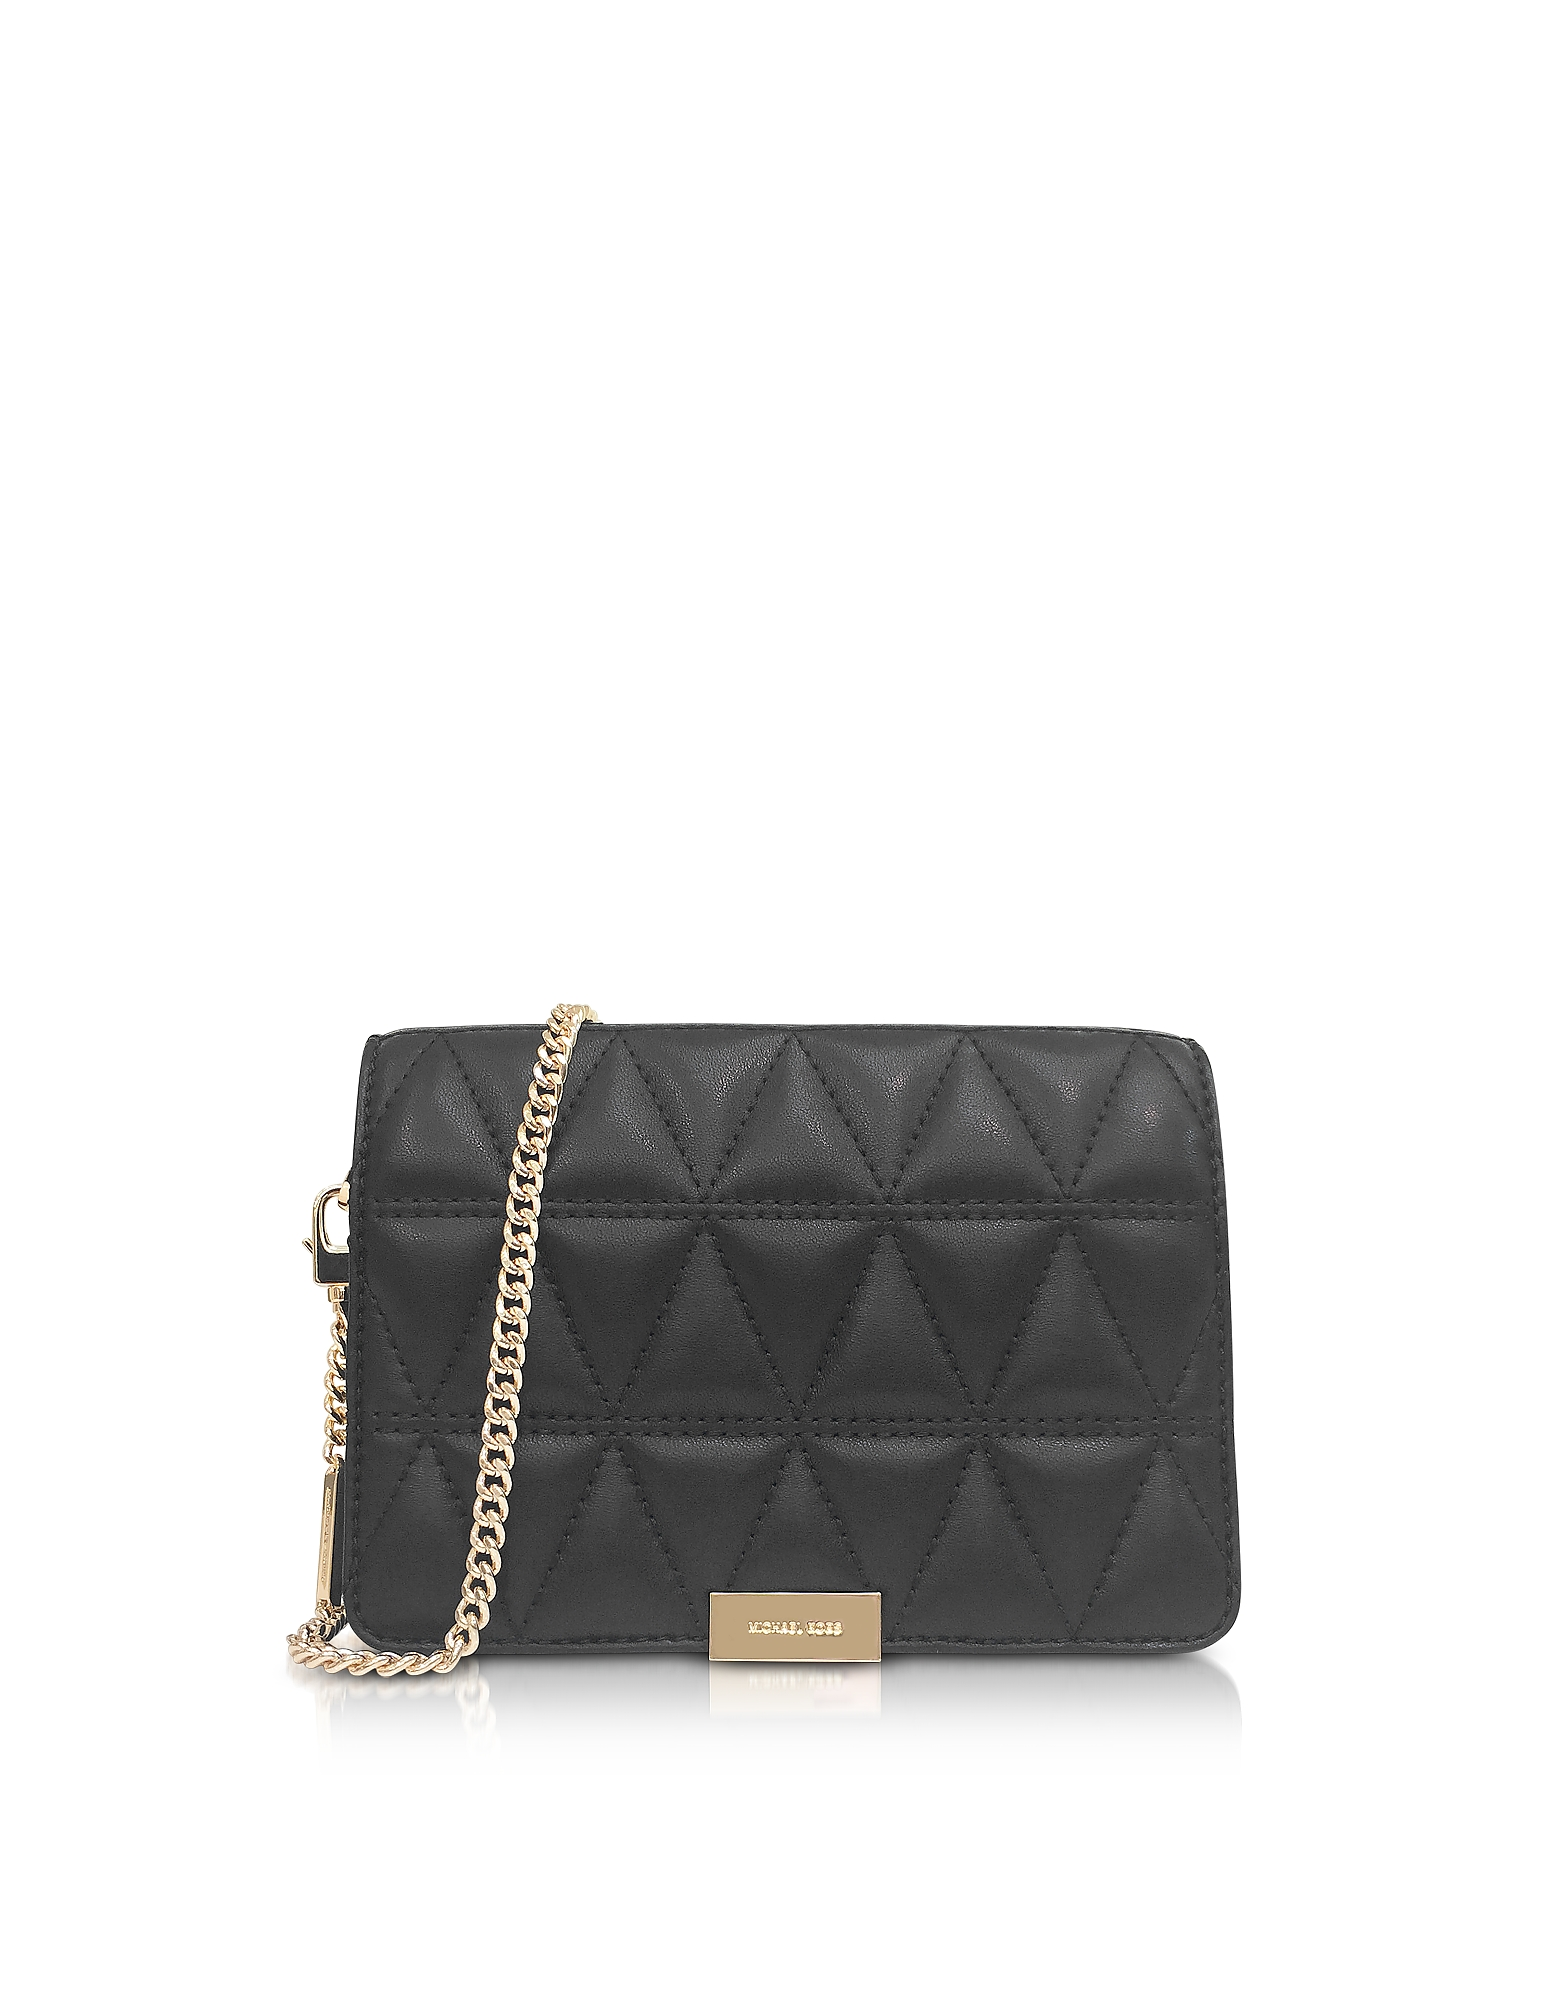 Michael Kors Handbags, Jade Black Quilted-Leather Clutch